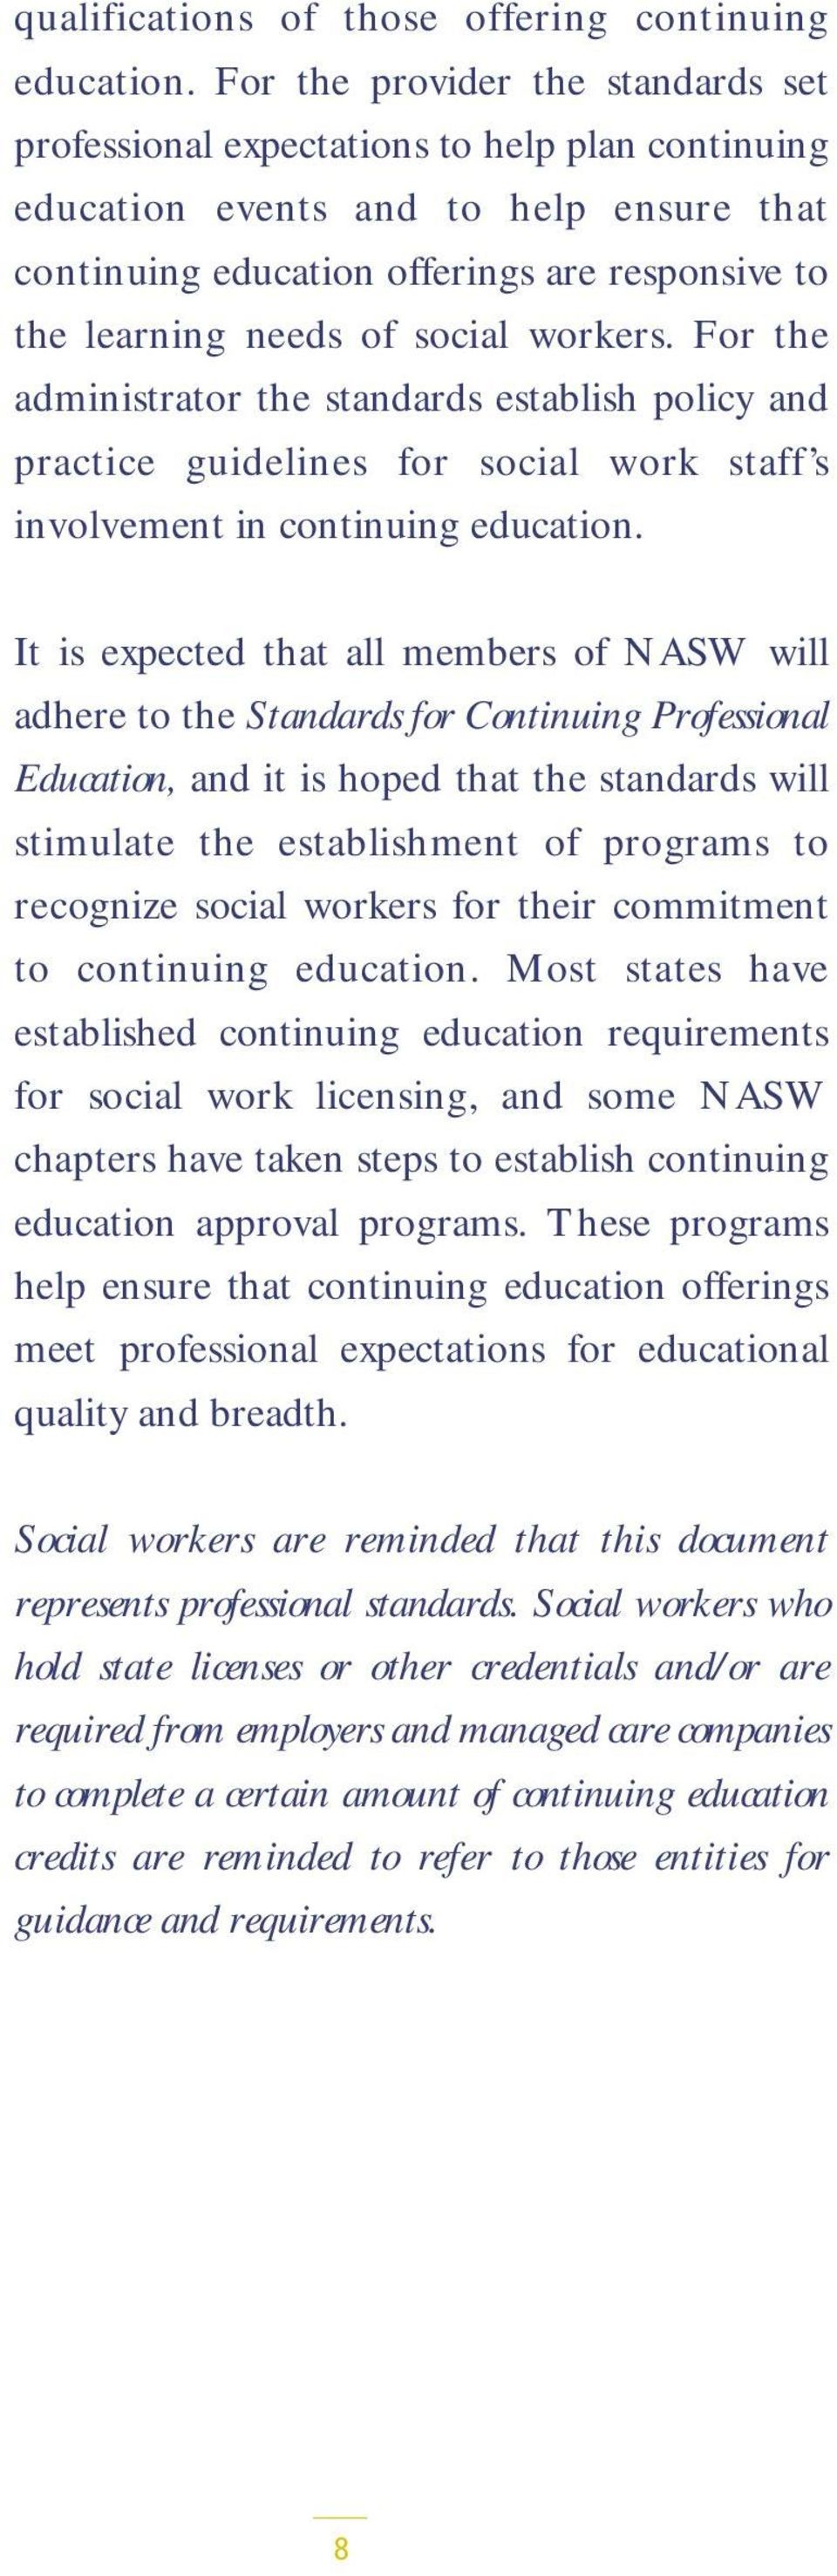 social workers. For the administrator the standards establish policy and practice guidelines for social work staff s involvement in continuing education.